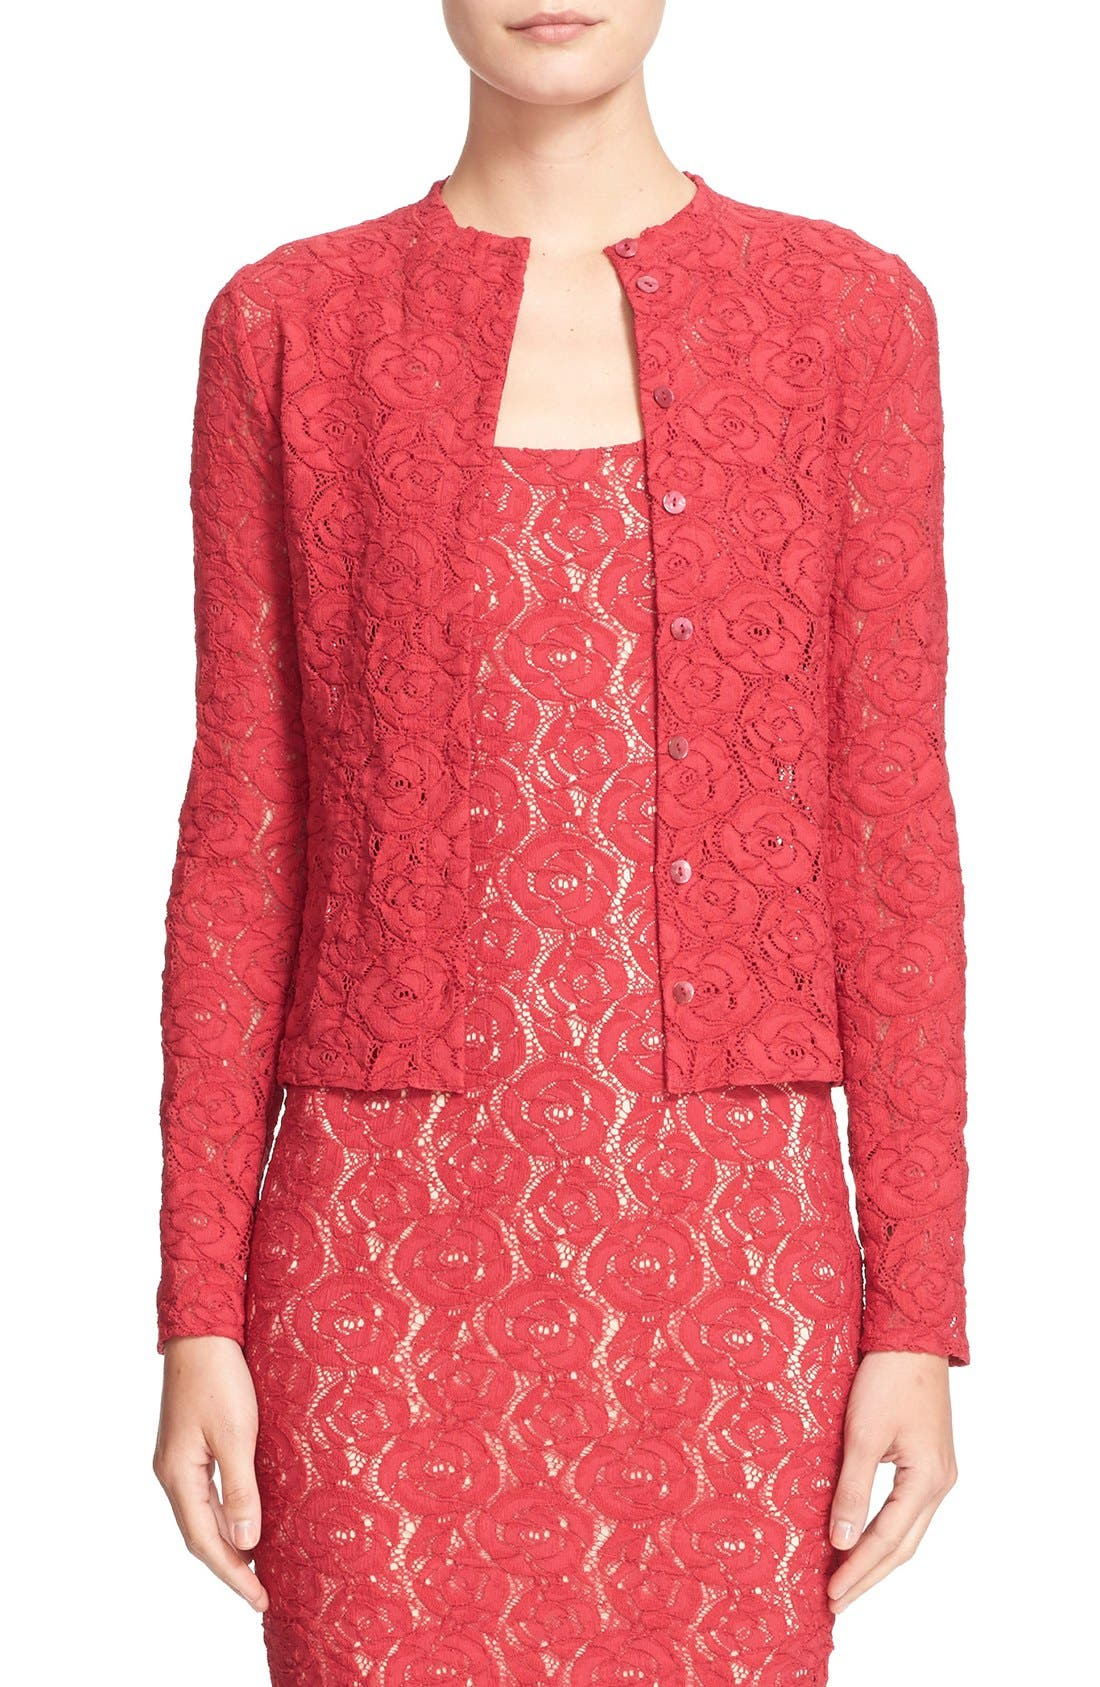 Alternate Image 1 Selected - Fuzzi Floral Lace Cardigan